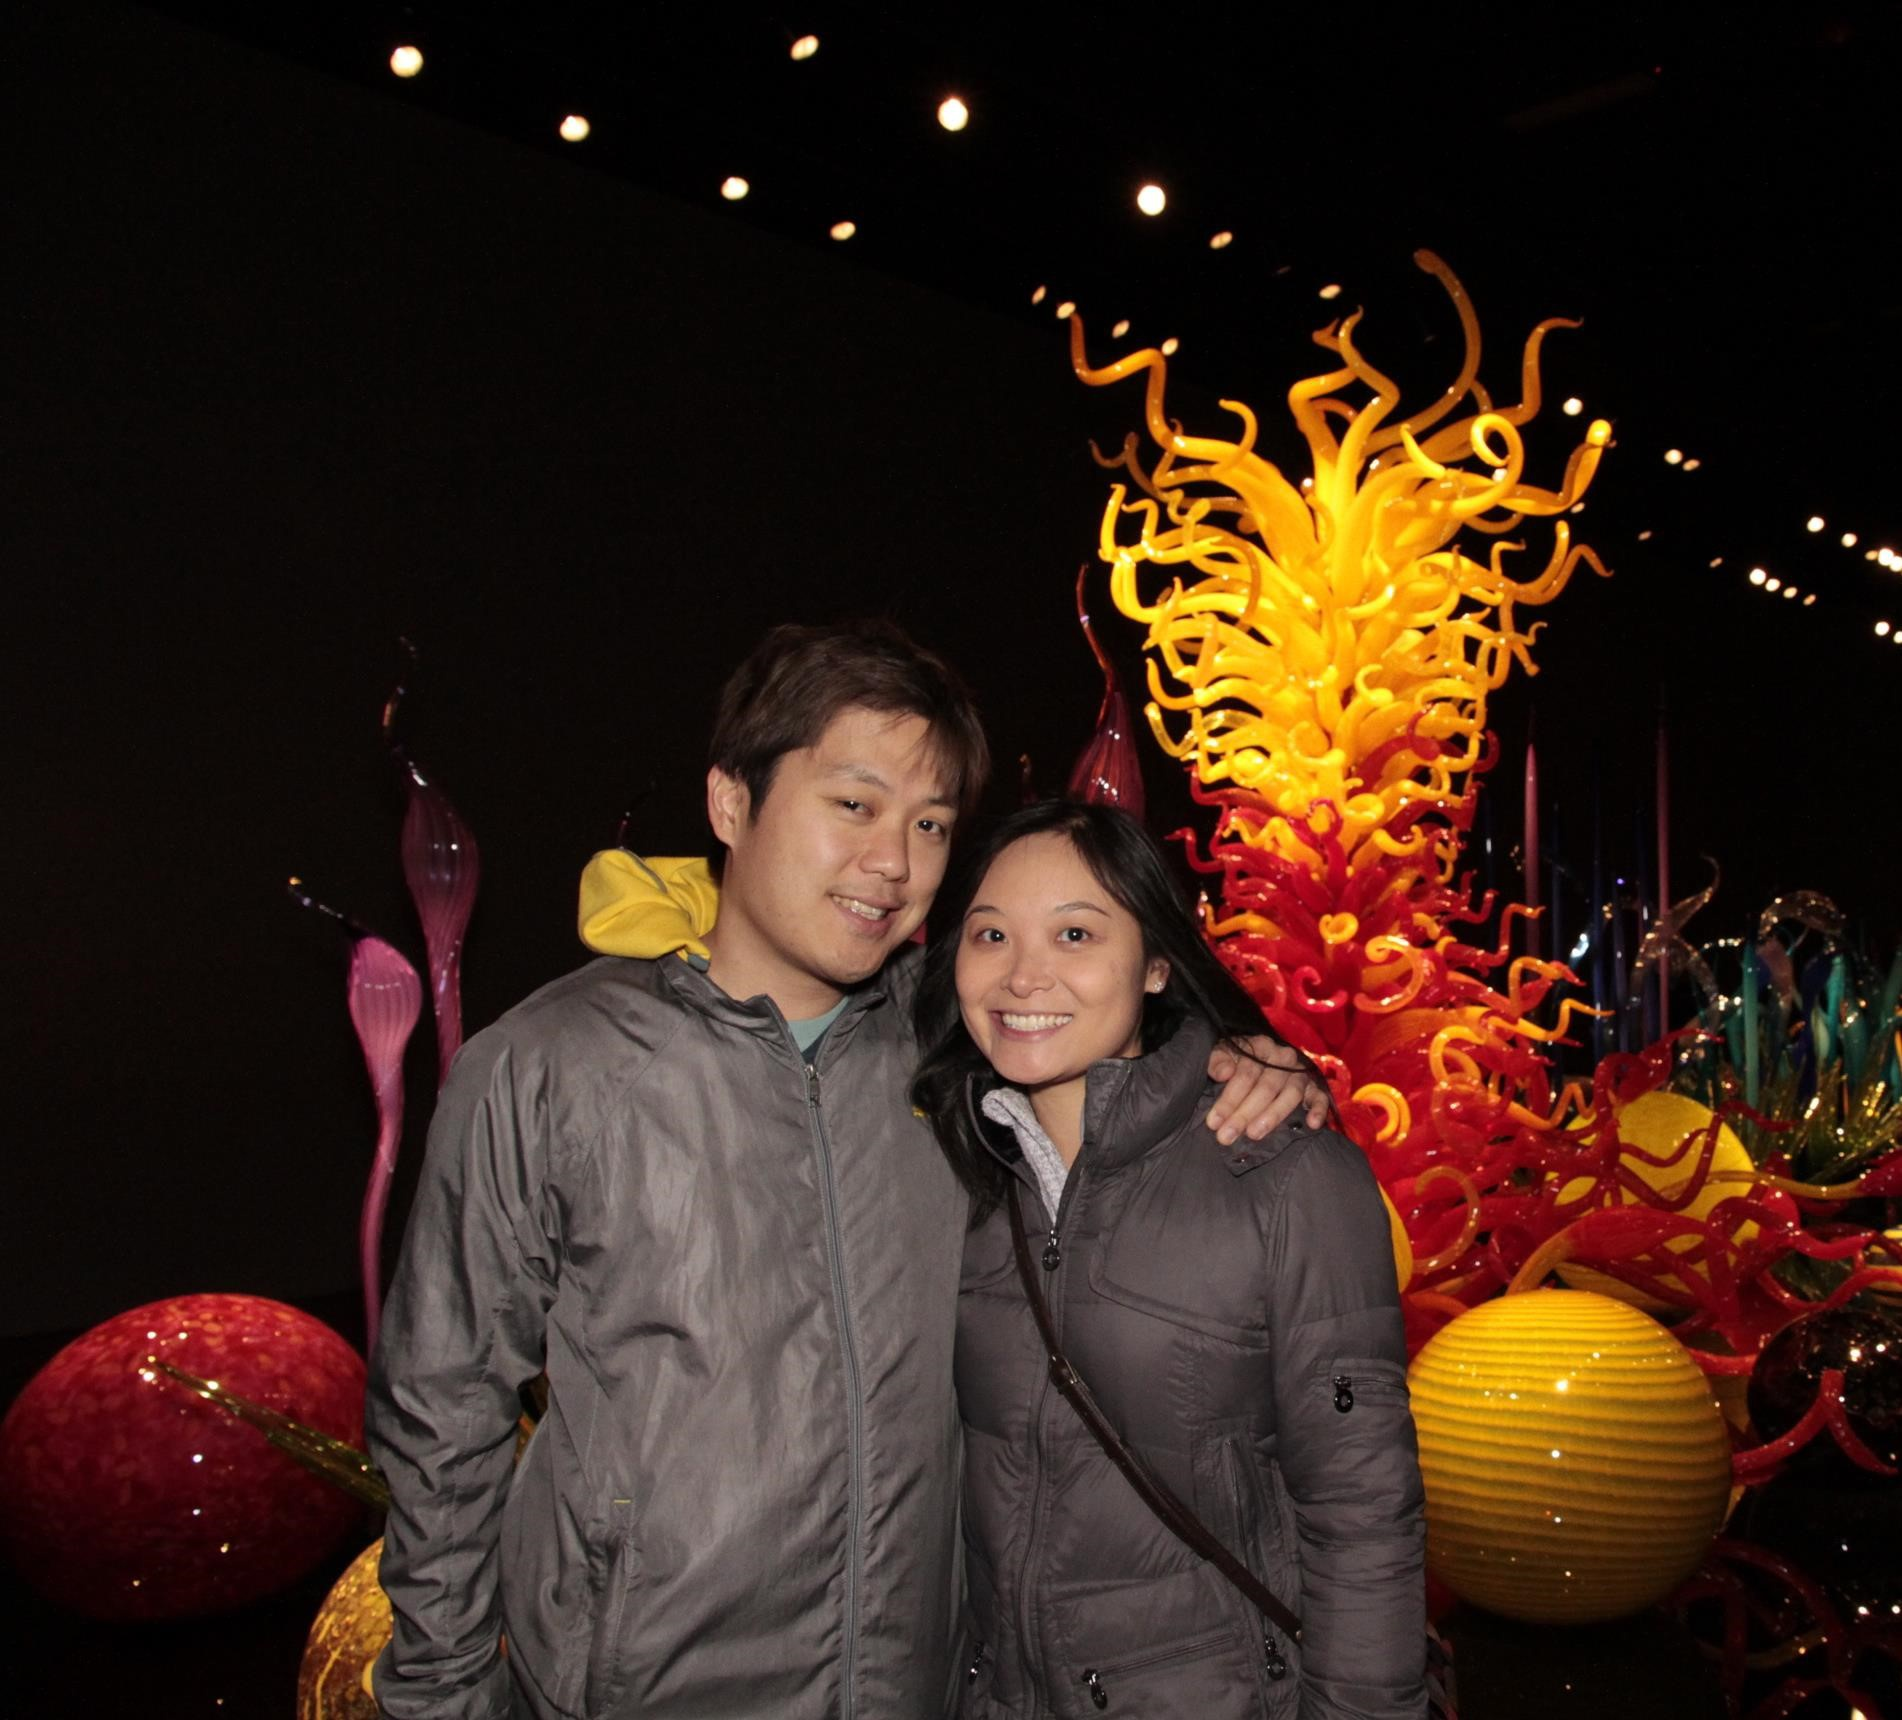 Chihuly Museum in Seattle